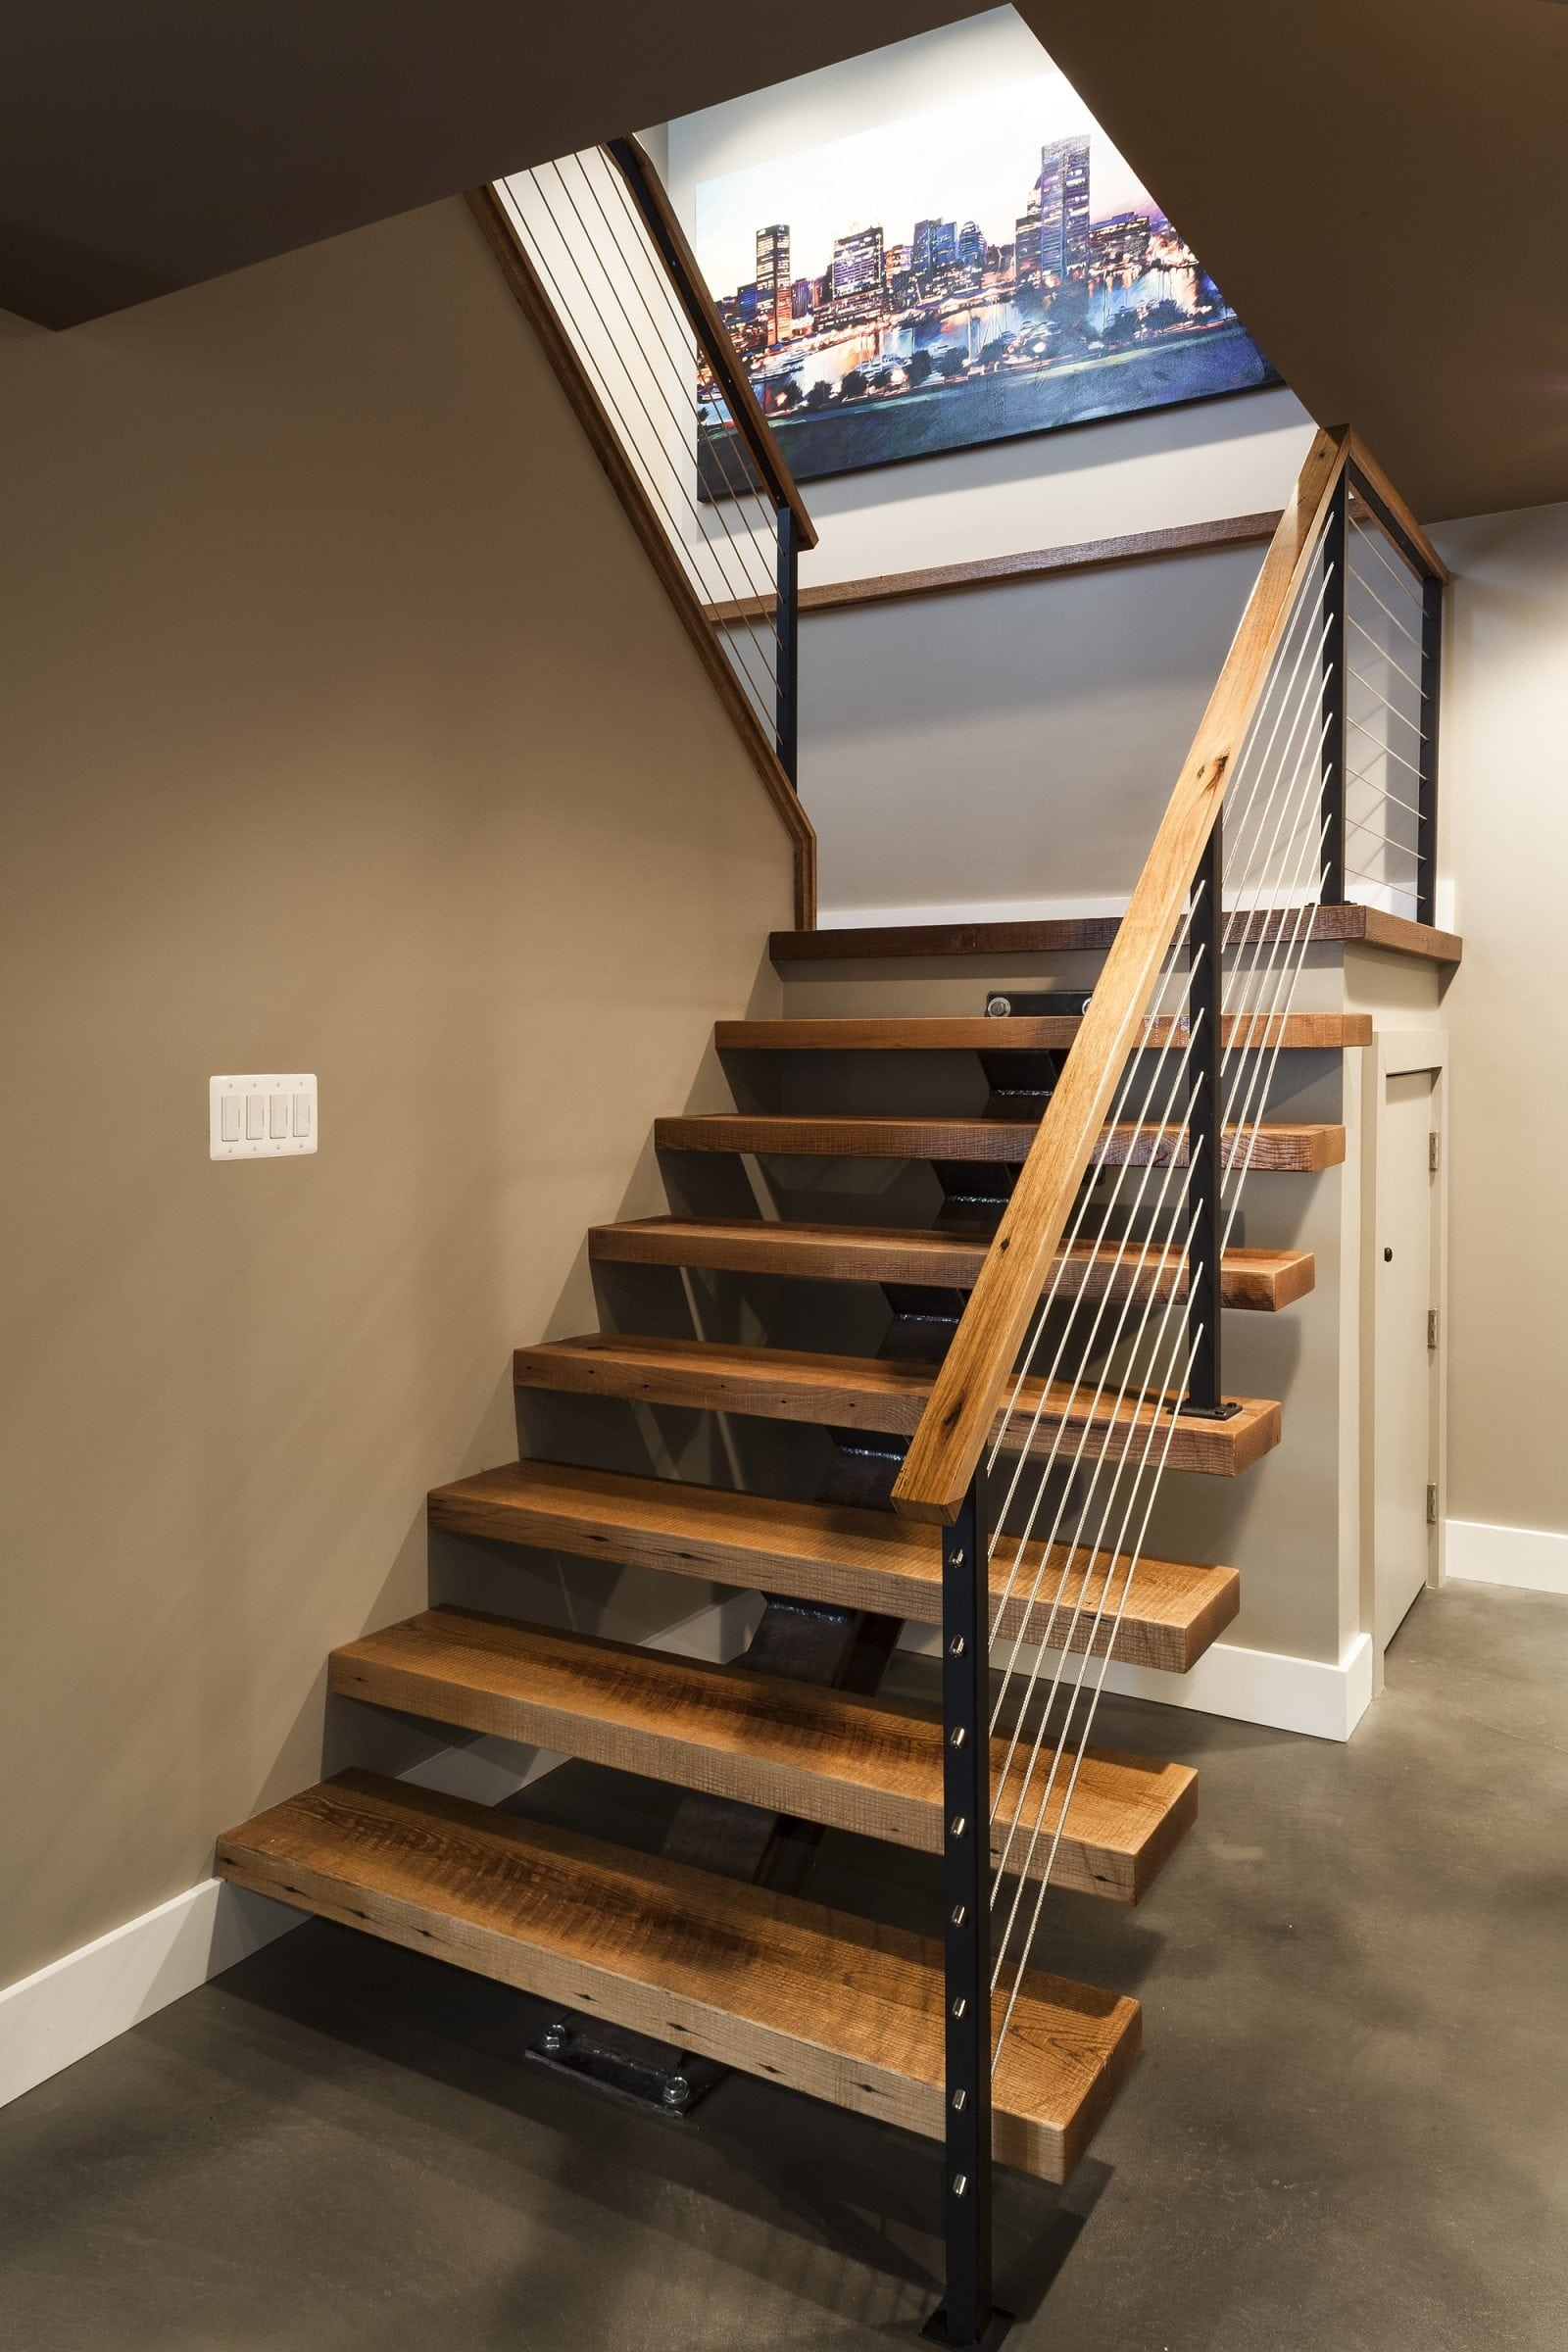 Cable Railing Vs Wood Railing Owings Brothers Contracting | Diy Interior Cable Railing | Front Step | 42 Inch | Modern | Wire | Low Cost